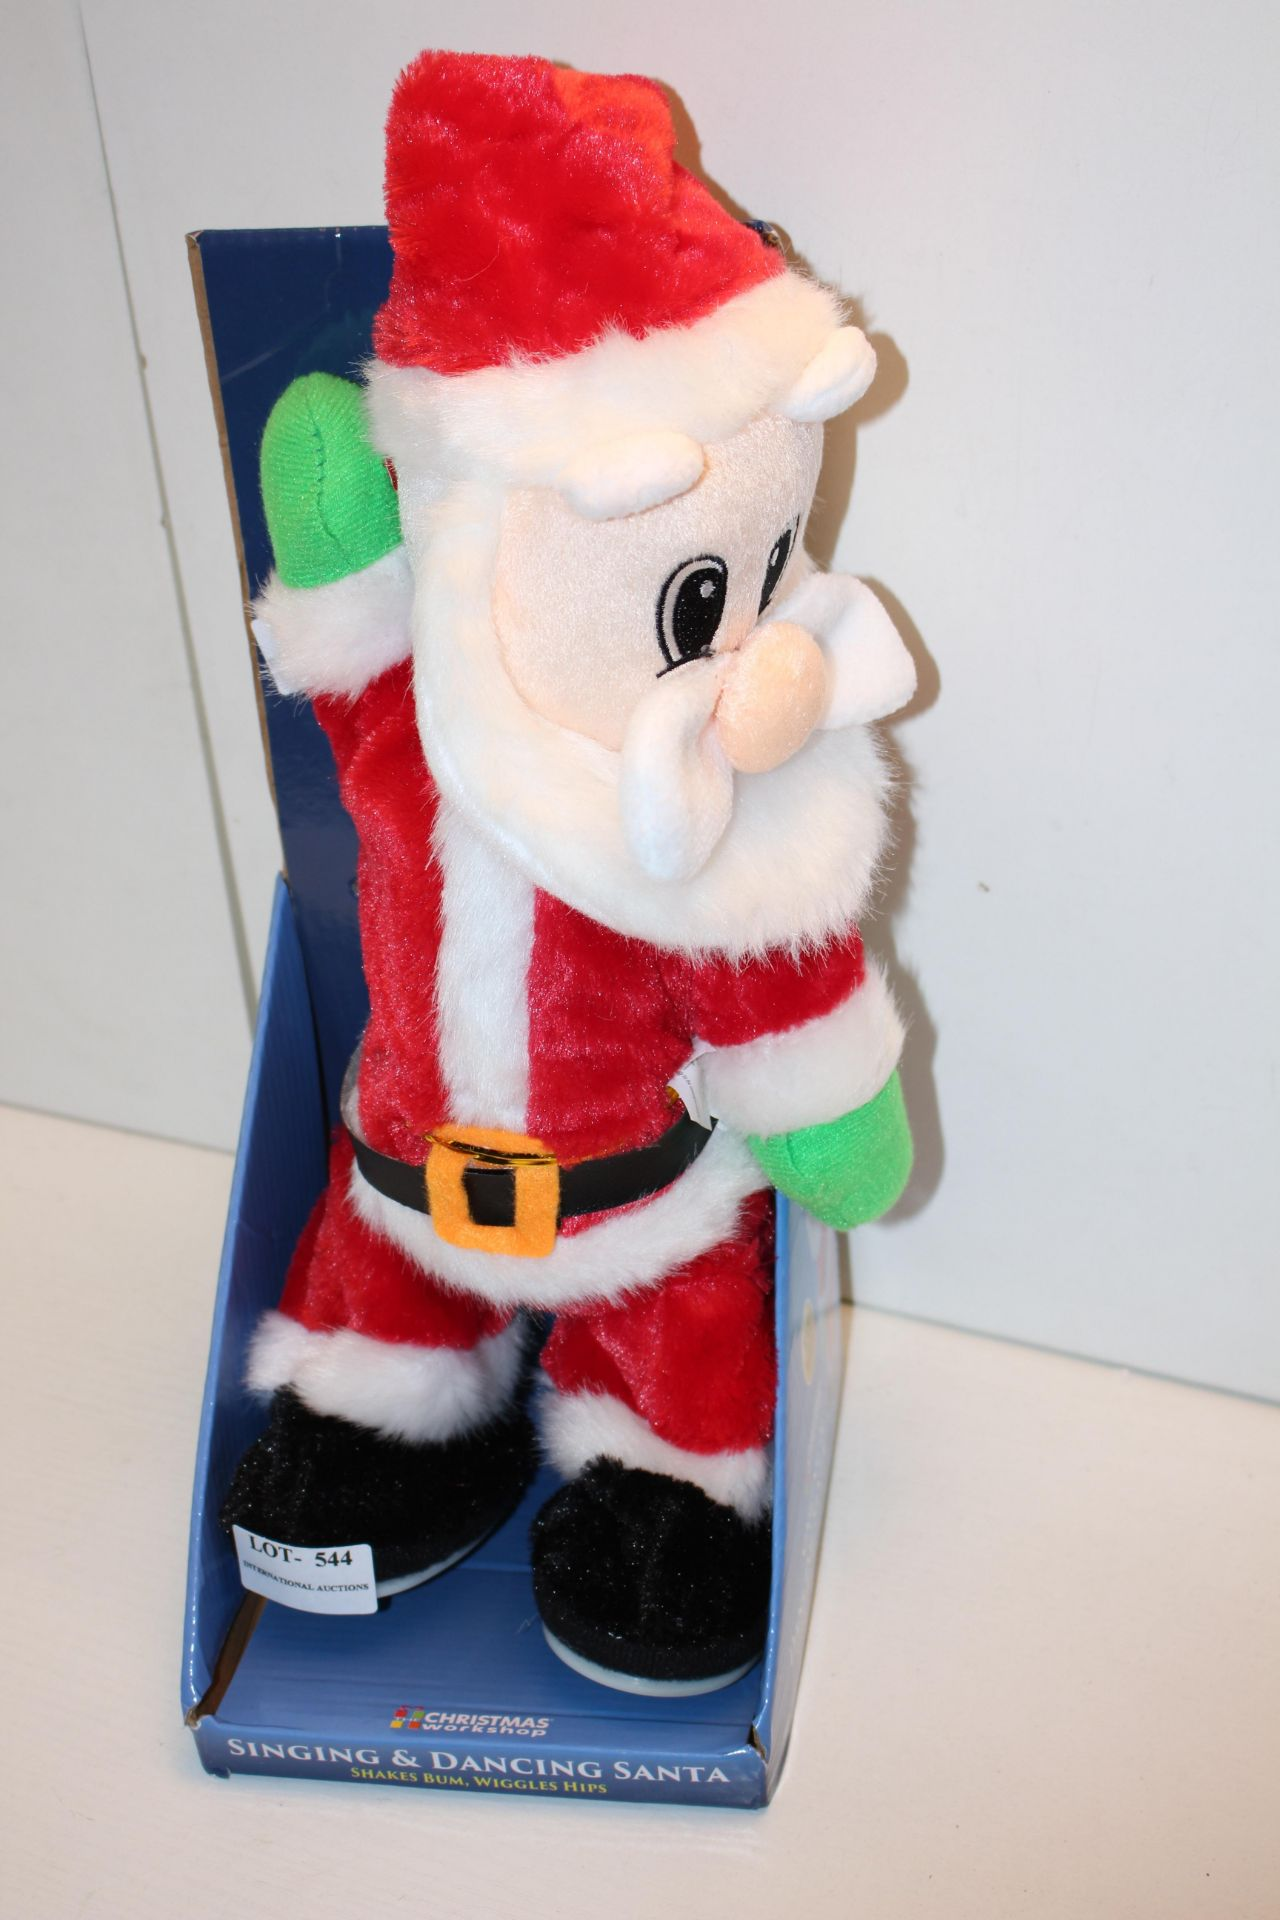 BOXED SINGING AND DANCING FATHER CHRISTMASCondition ReportAppraisal Available on Request- All